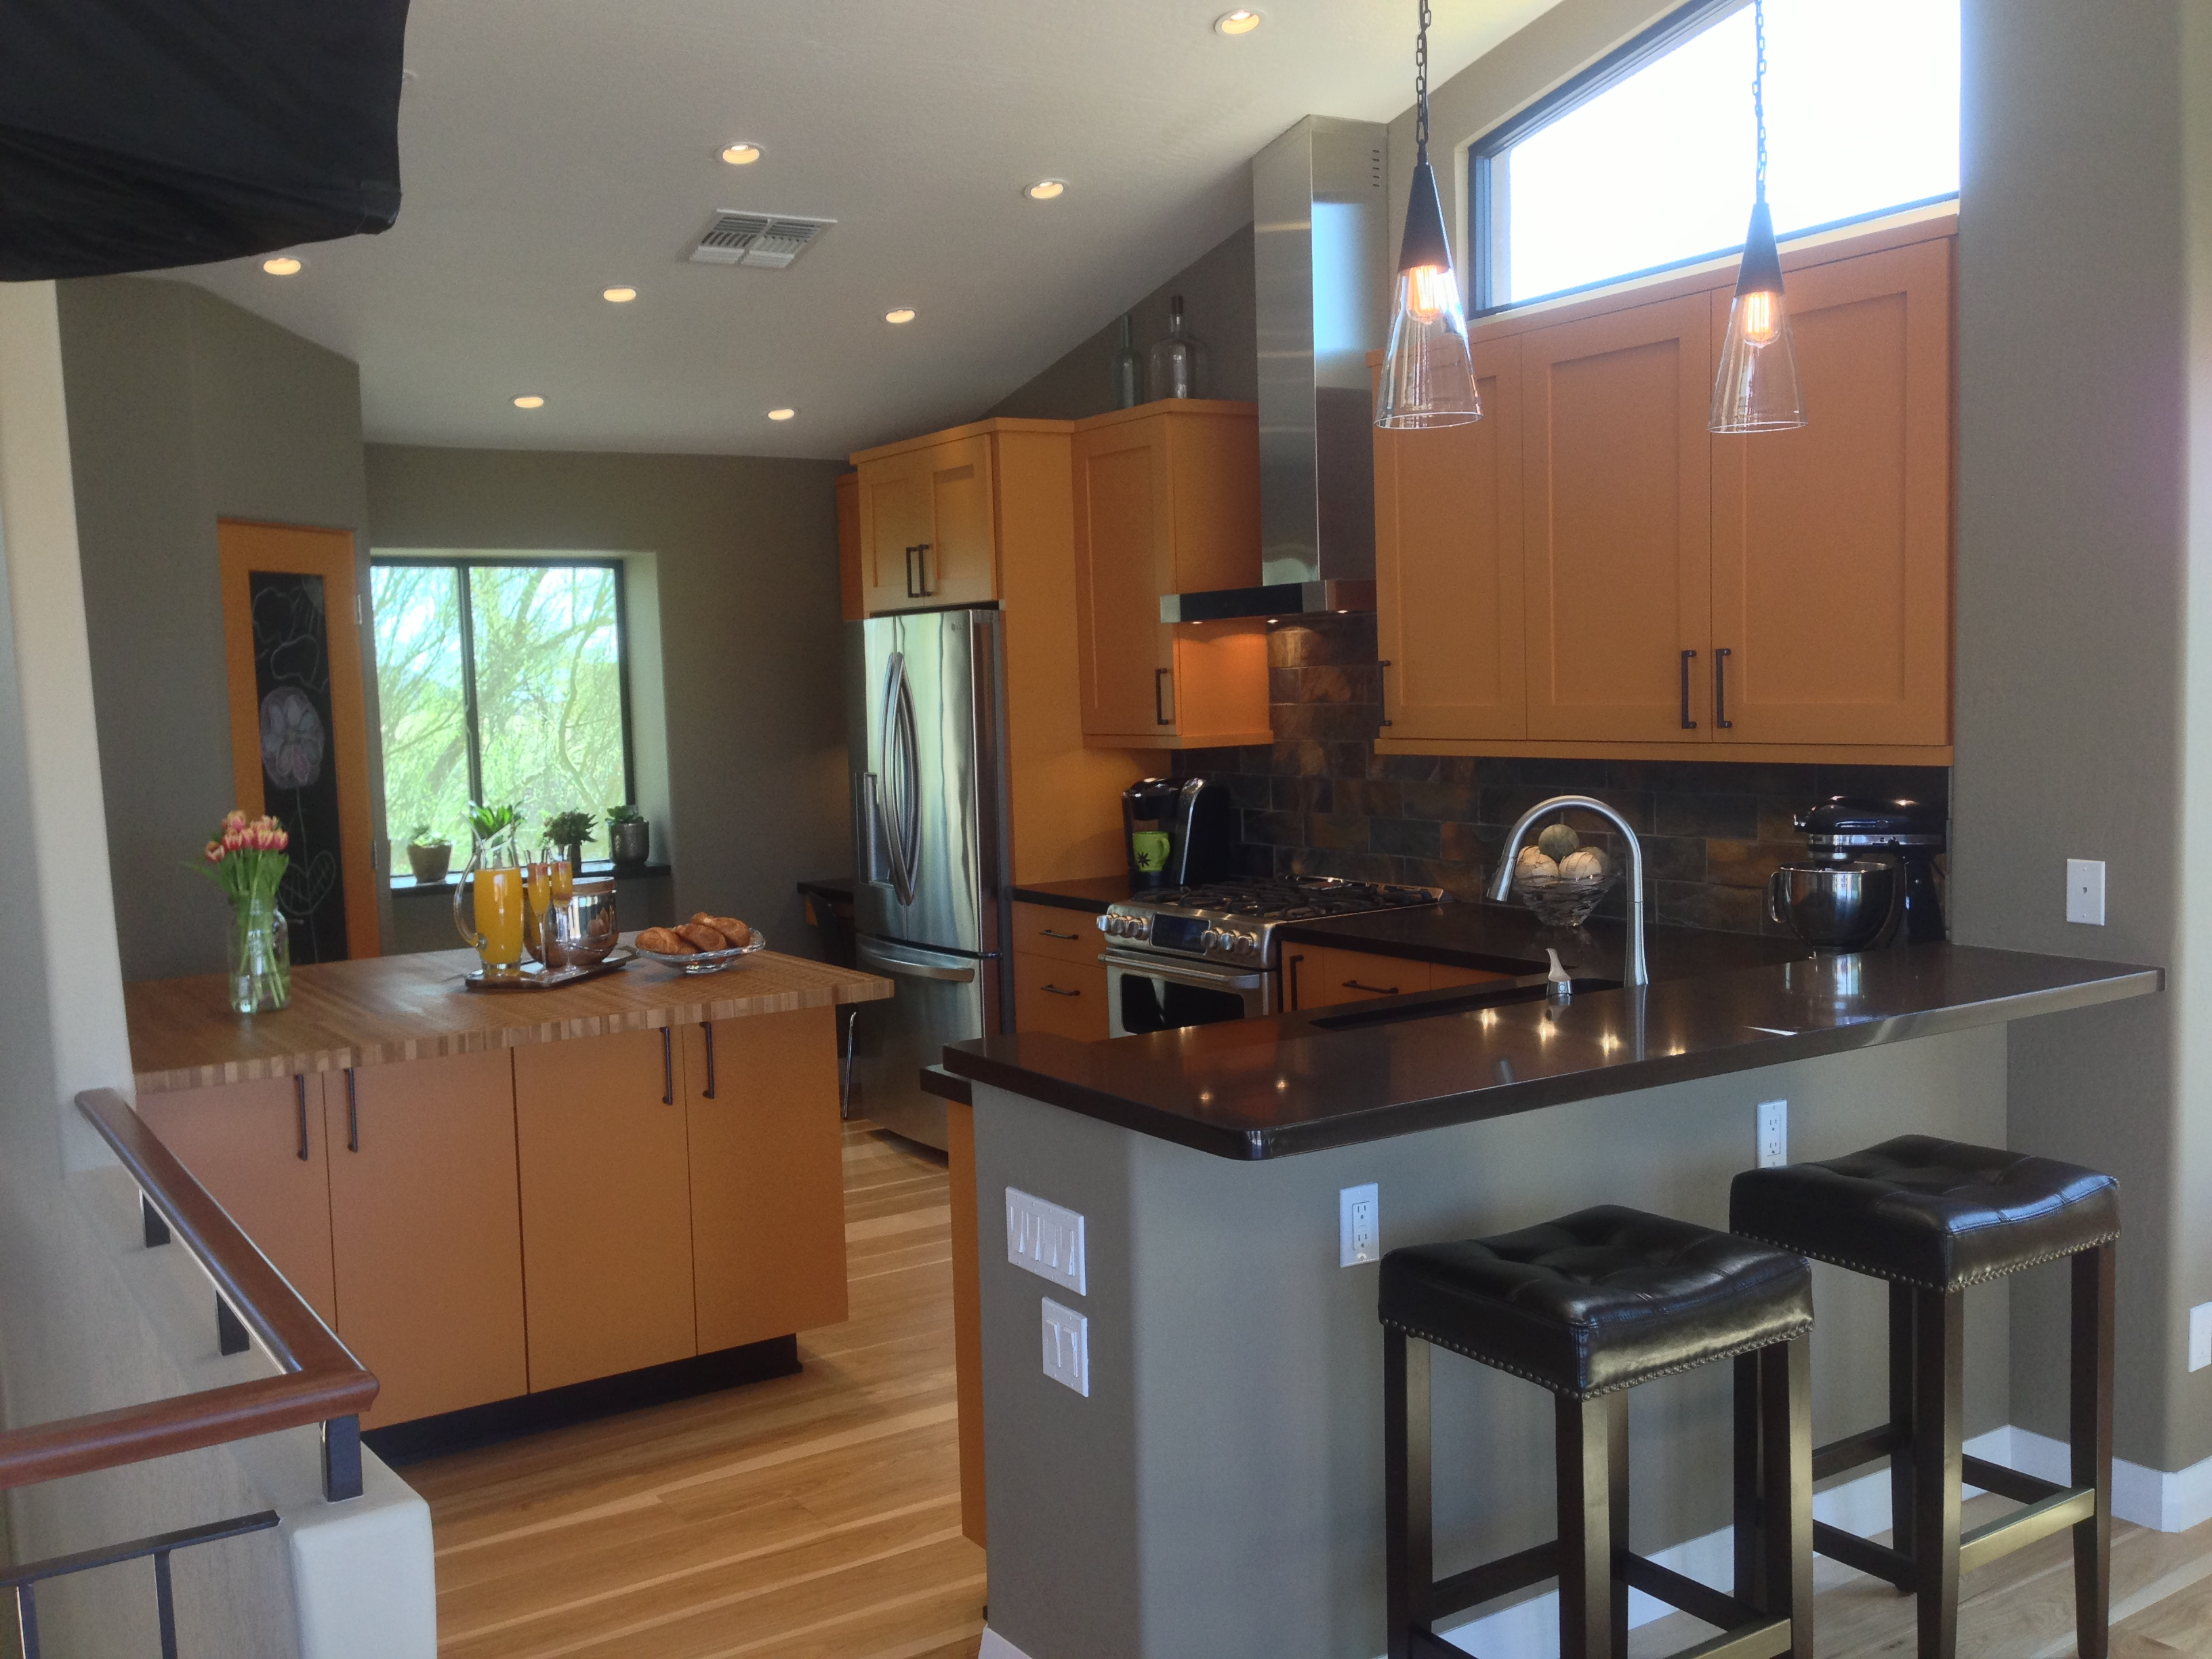 Kitchen Black Granite : Granite countertops for kitchen remodeling in scottsdale